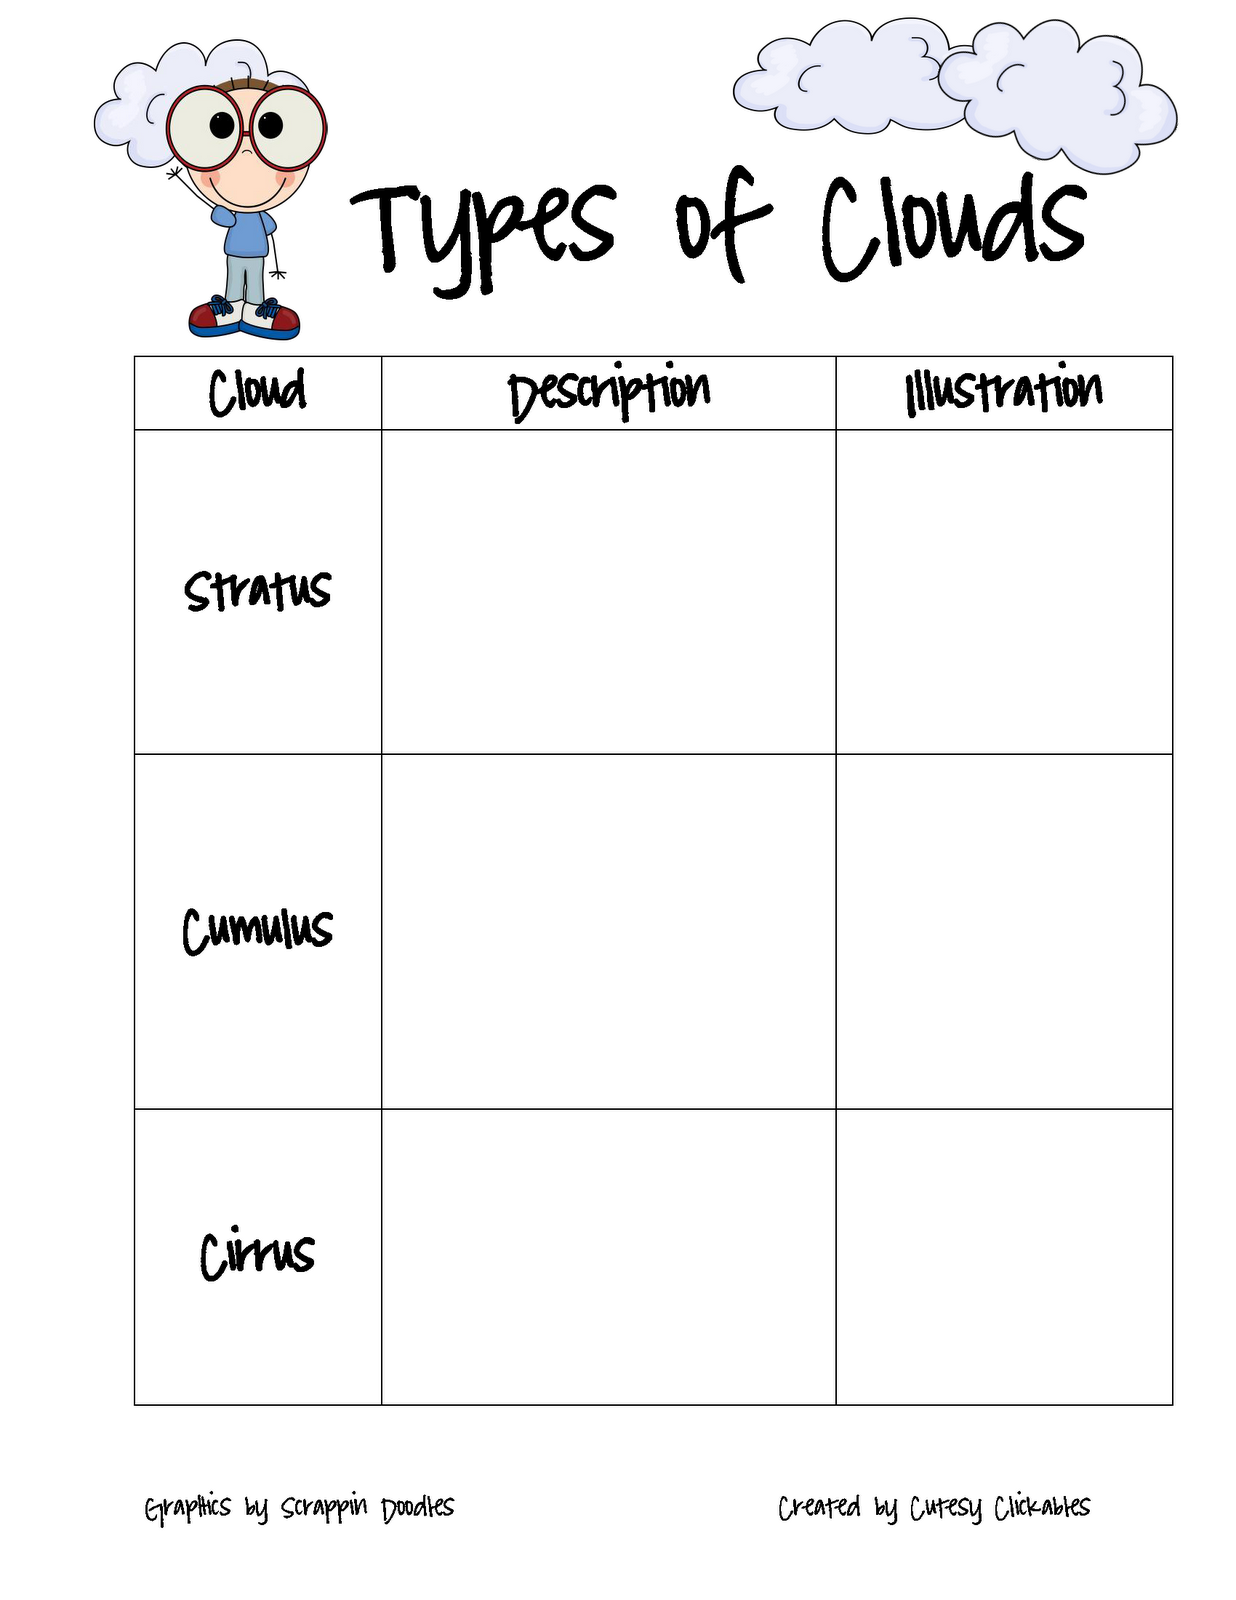 types of clouds freebie teacher ideas and resources pinterest cloud weather and school. Black Bedroom Furniture Sets. Home Design Ideas